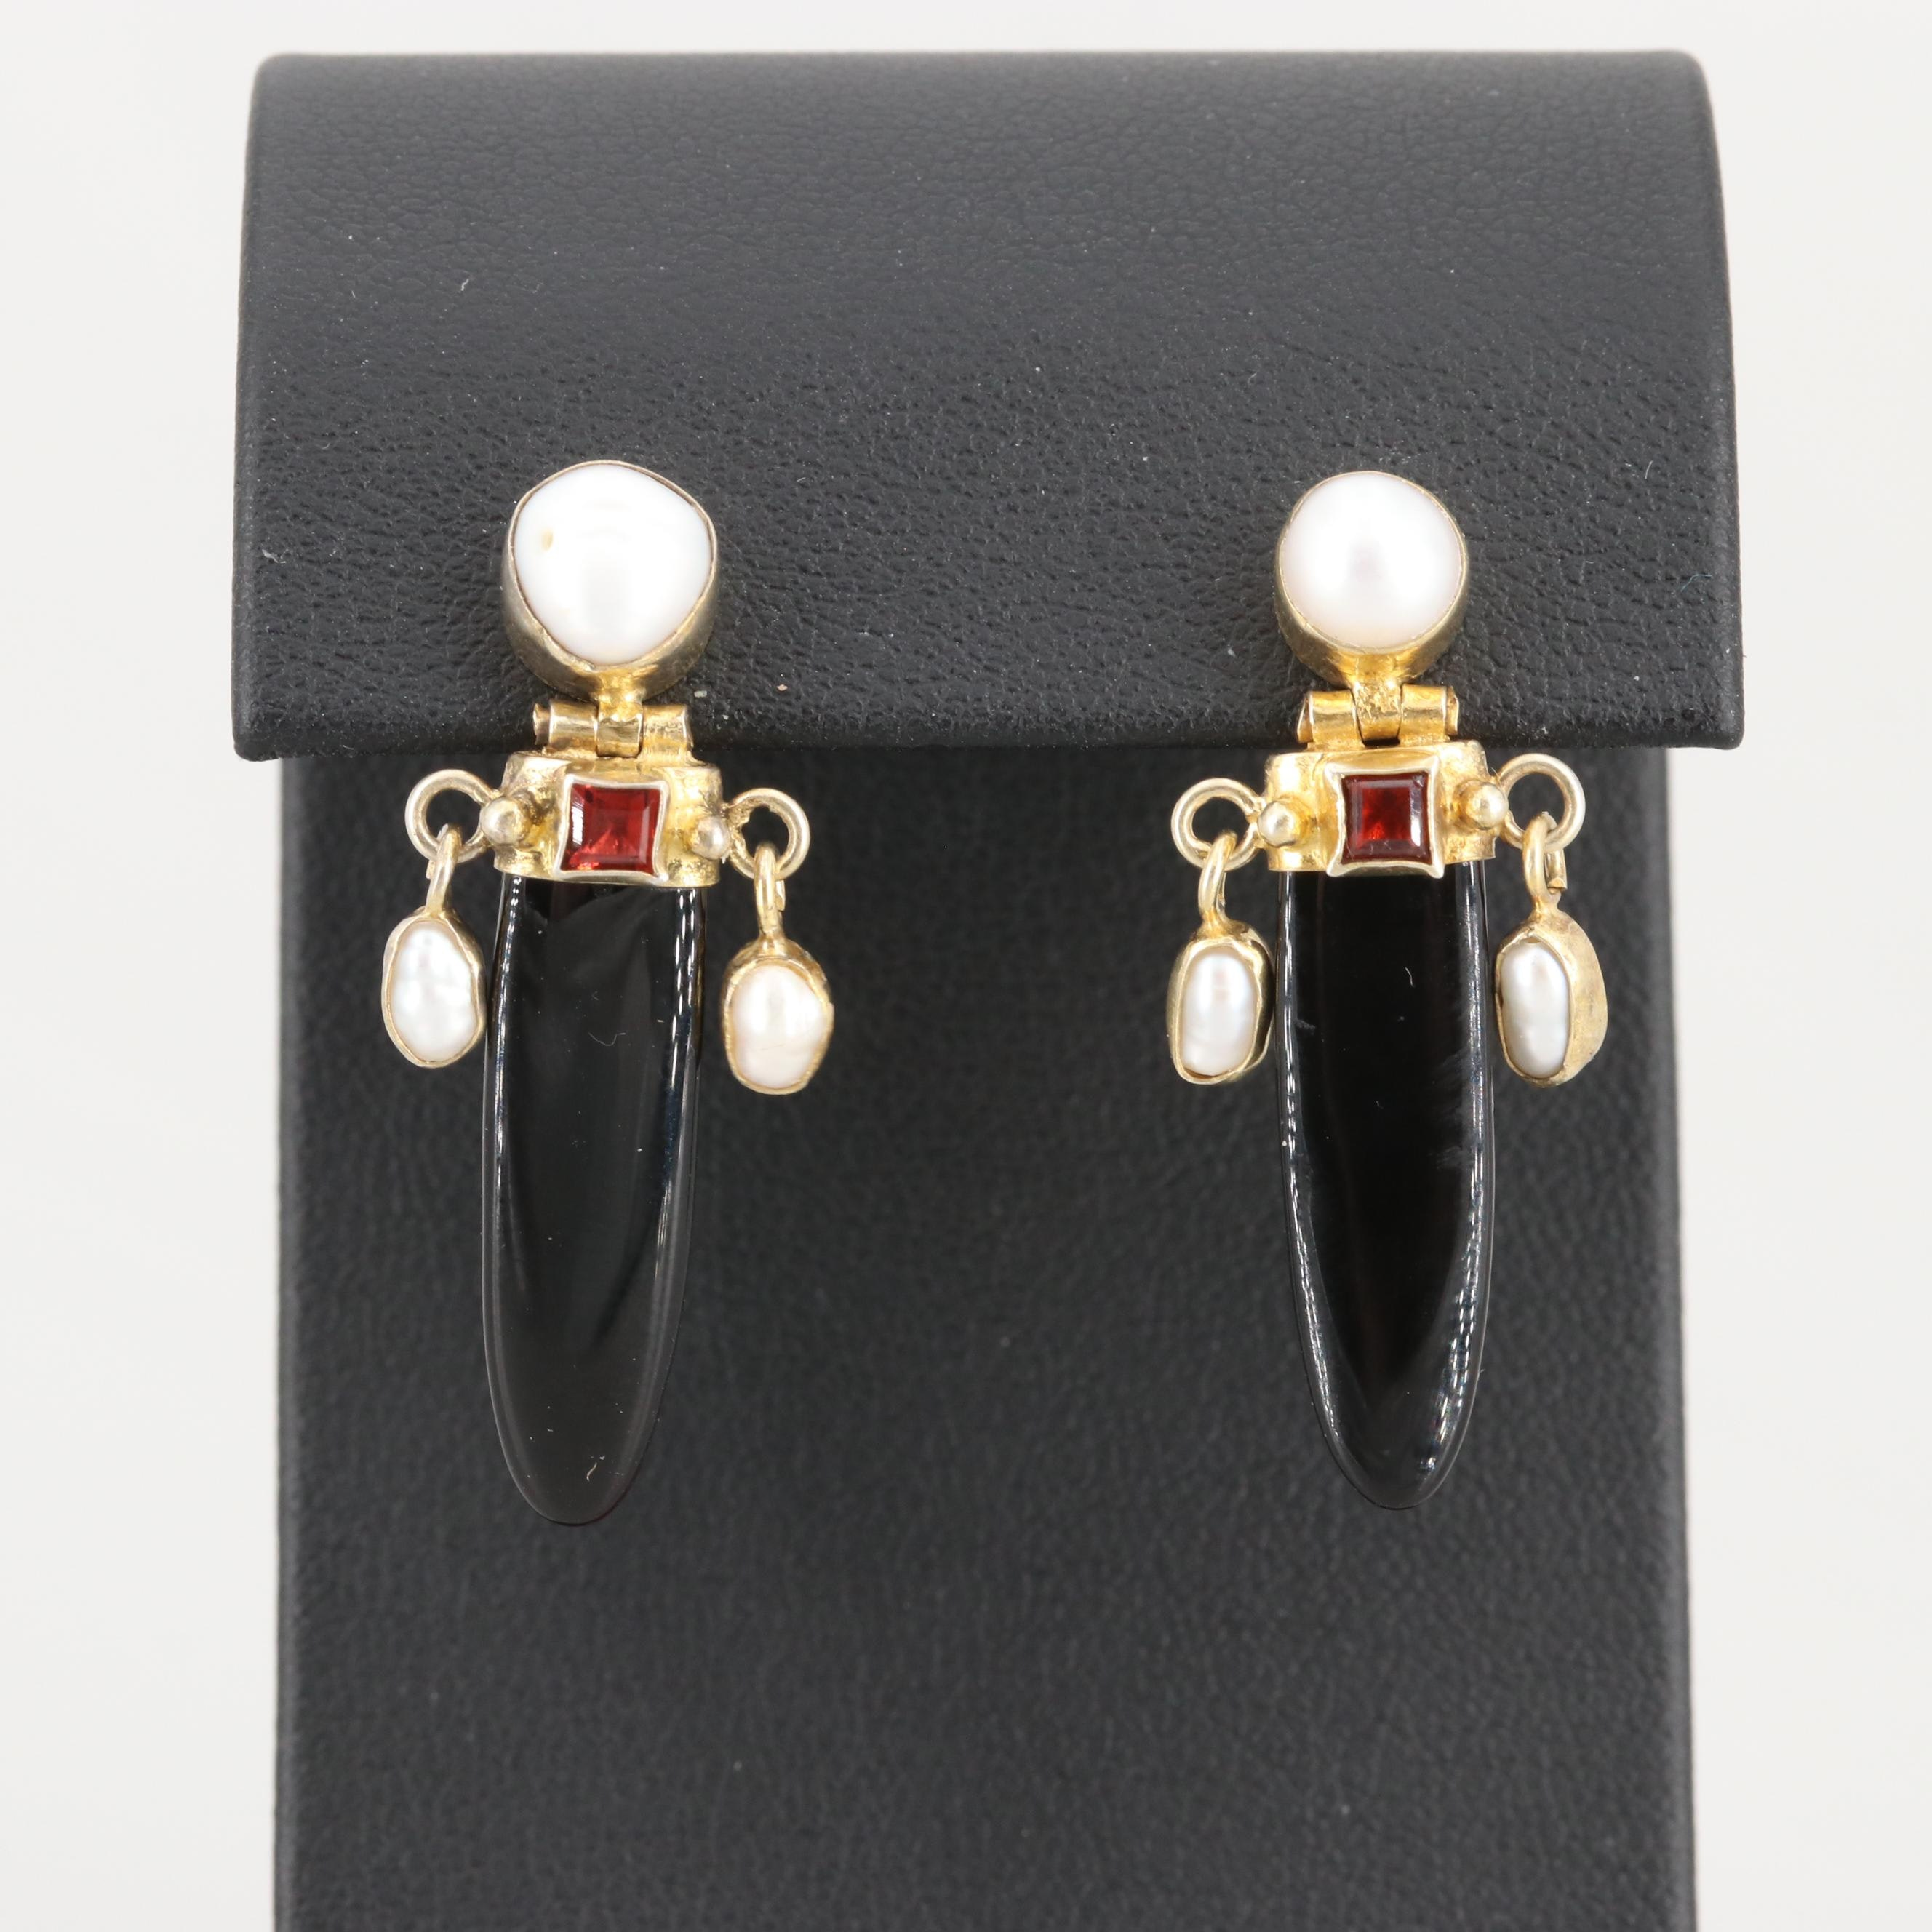 Gold Wash on Sterling Black Onyx, Cultured Pearl and Rhodolite Garnet Earrings